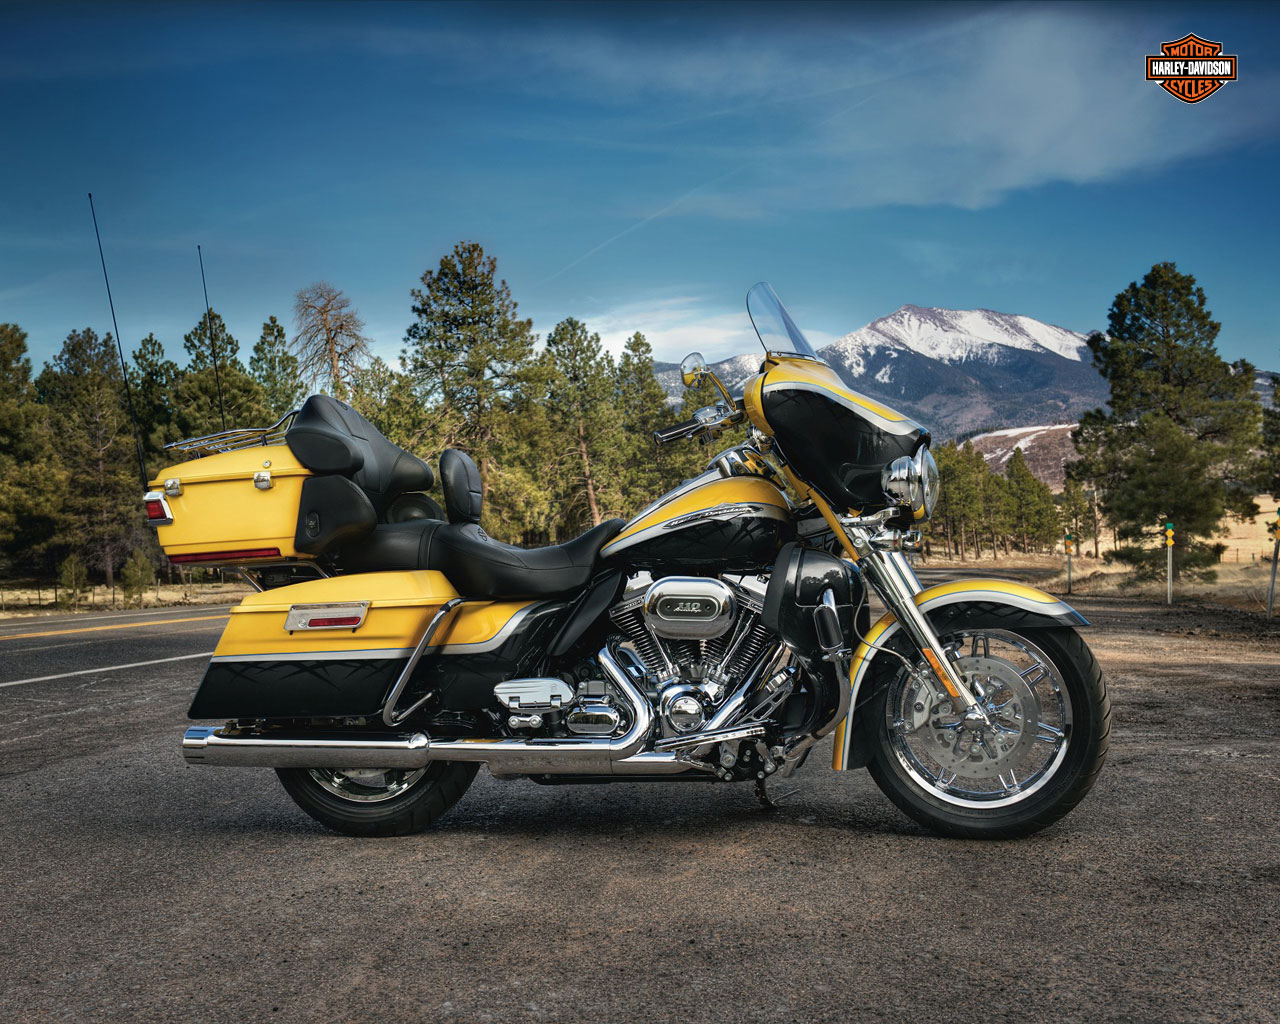 2012 harley davidson flhtcuse7 cvo ultra classic electra glide review. Black Bedroom Furniture Sets. Home Design Ideas